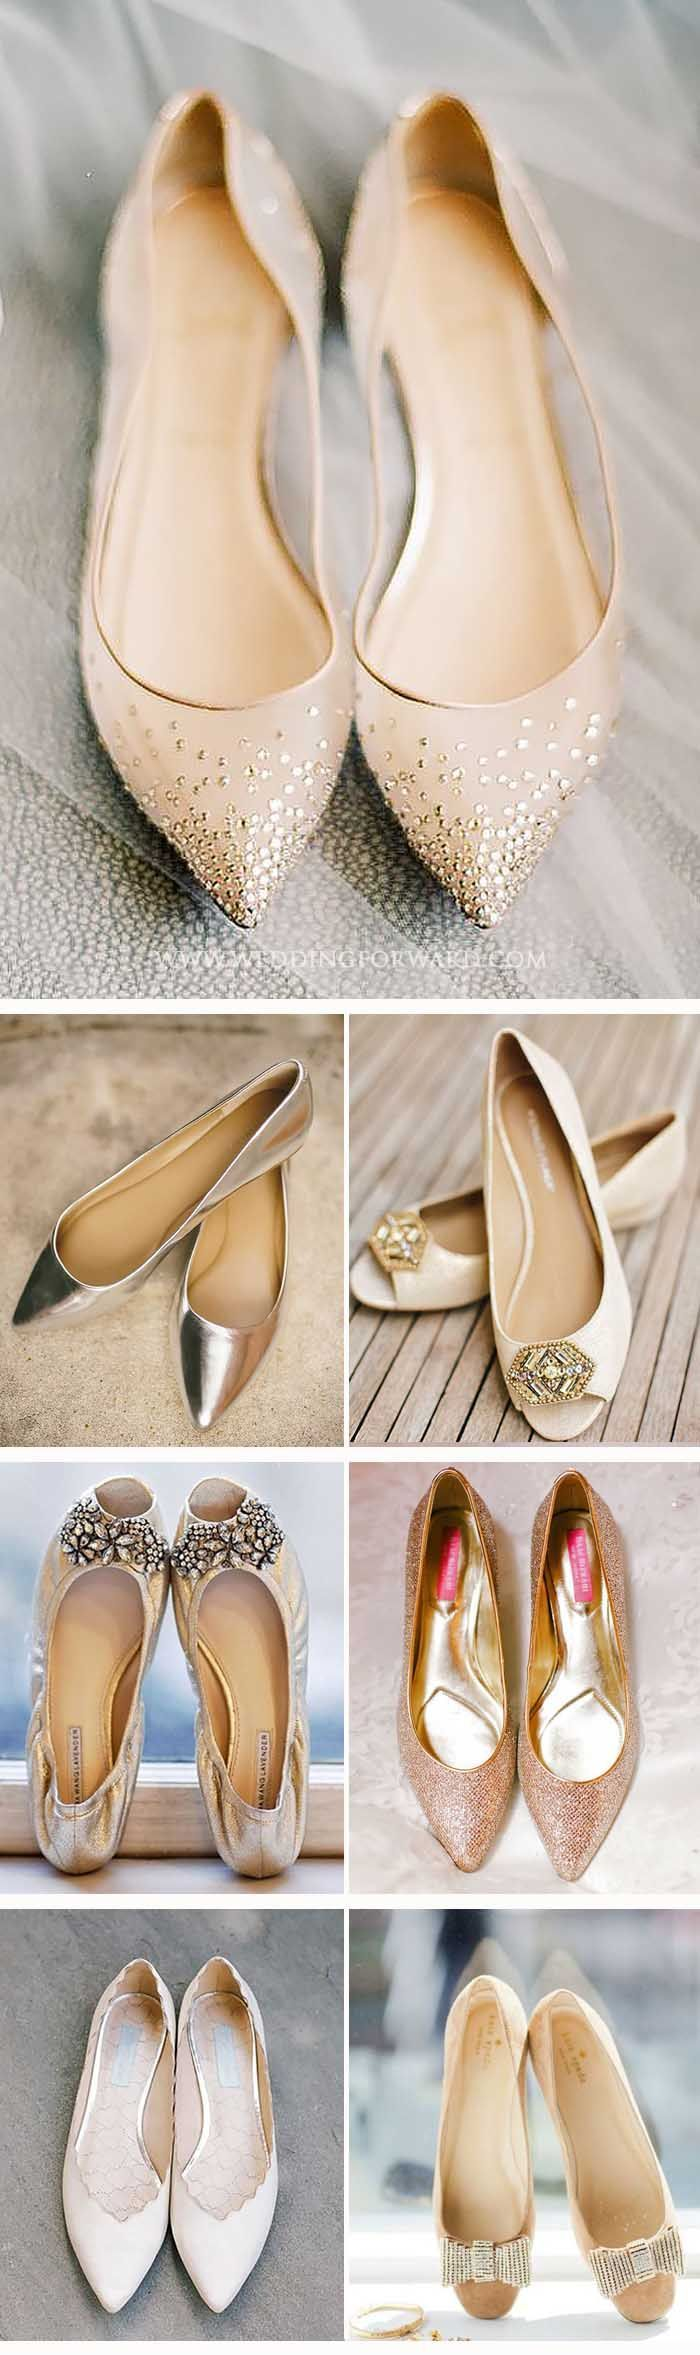 24 Flat Wedding Shoes For The Love Of Comfort And Style ❤️ We presented flat wedding shoes for you to not feel tired on wedding ceremony! See more: http://www.weddingforward.com/flat-wedding-shoes/ #weddings #shoes   Supernatural Sty